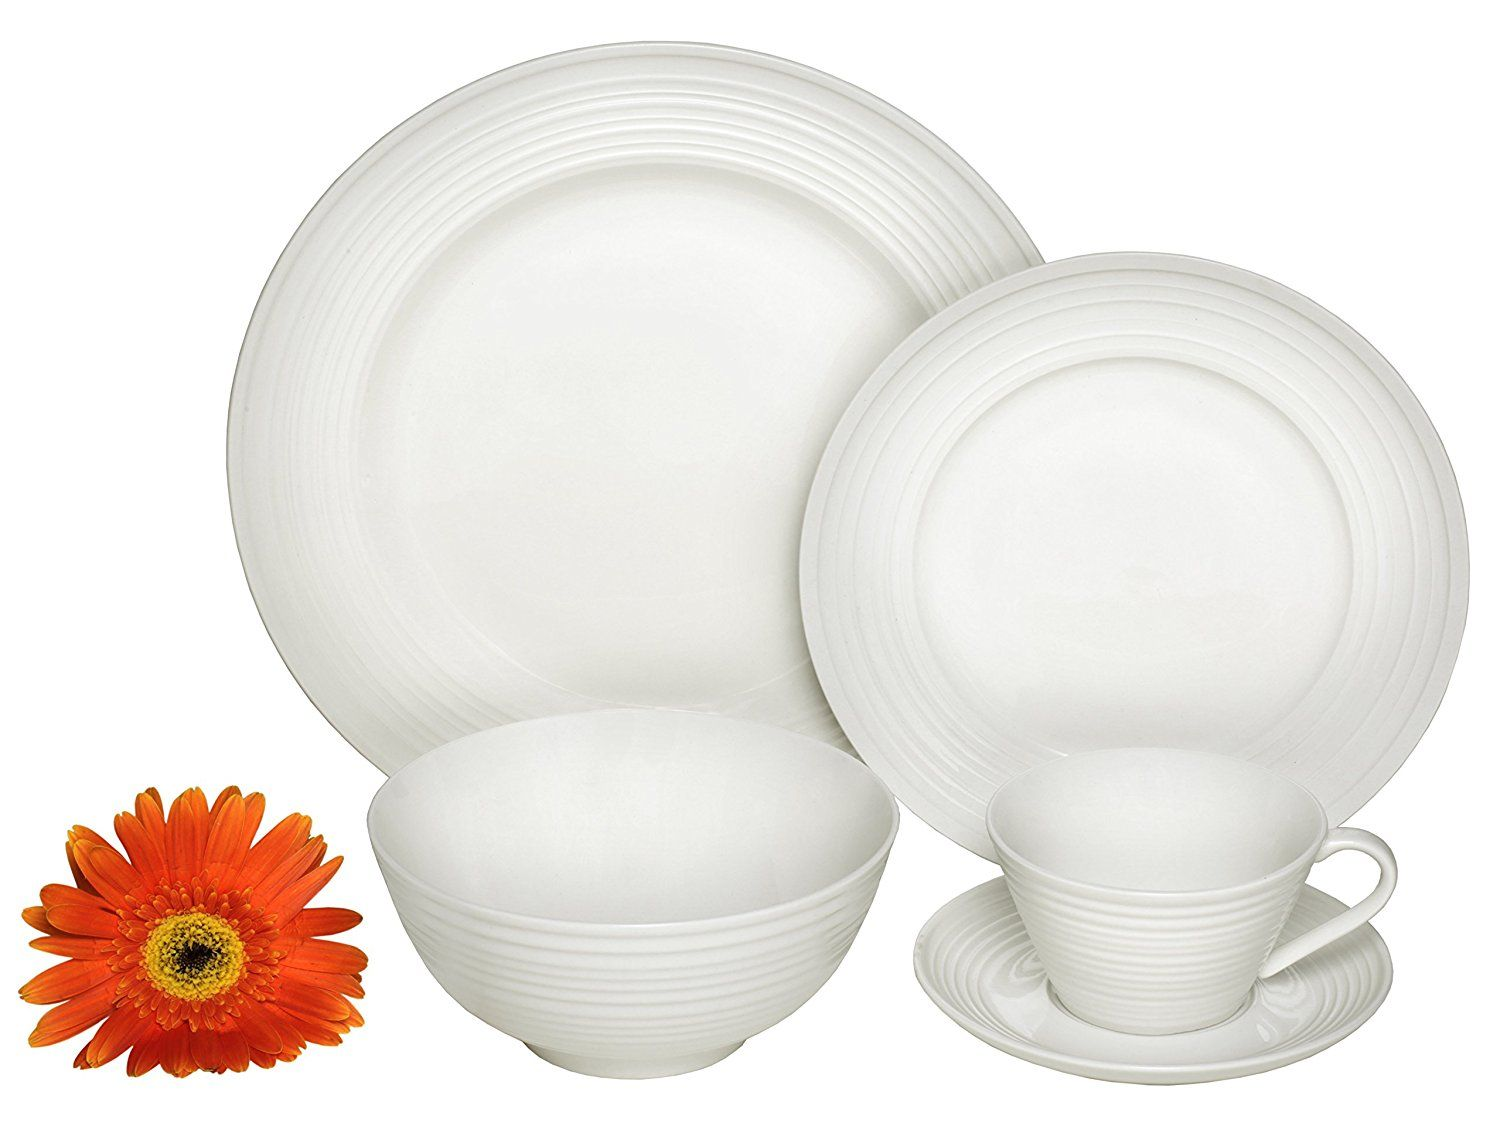 Amazon.com | Melange 40-Piece Porcelain Dinnerware Set (Classic Swirl) |  sc 1 st  Pinterest & Amazon.com | Melange 40-Piece Porcelain Dinnerware Set (Classic ...